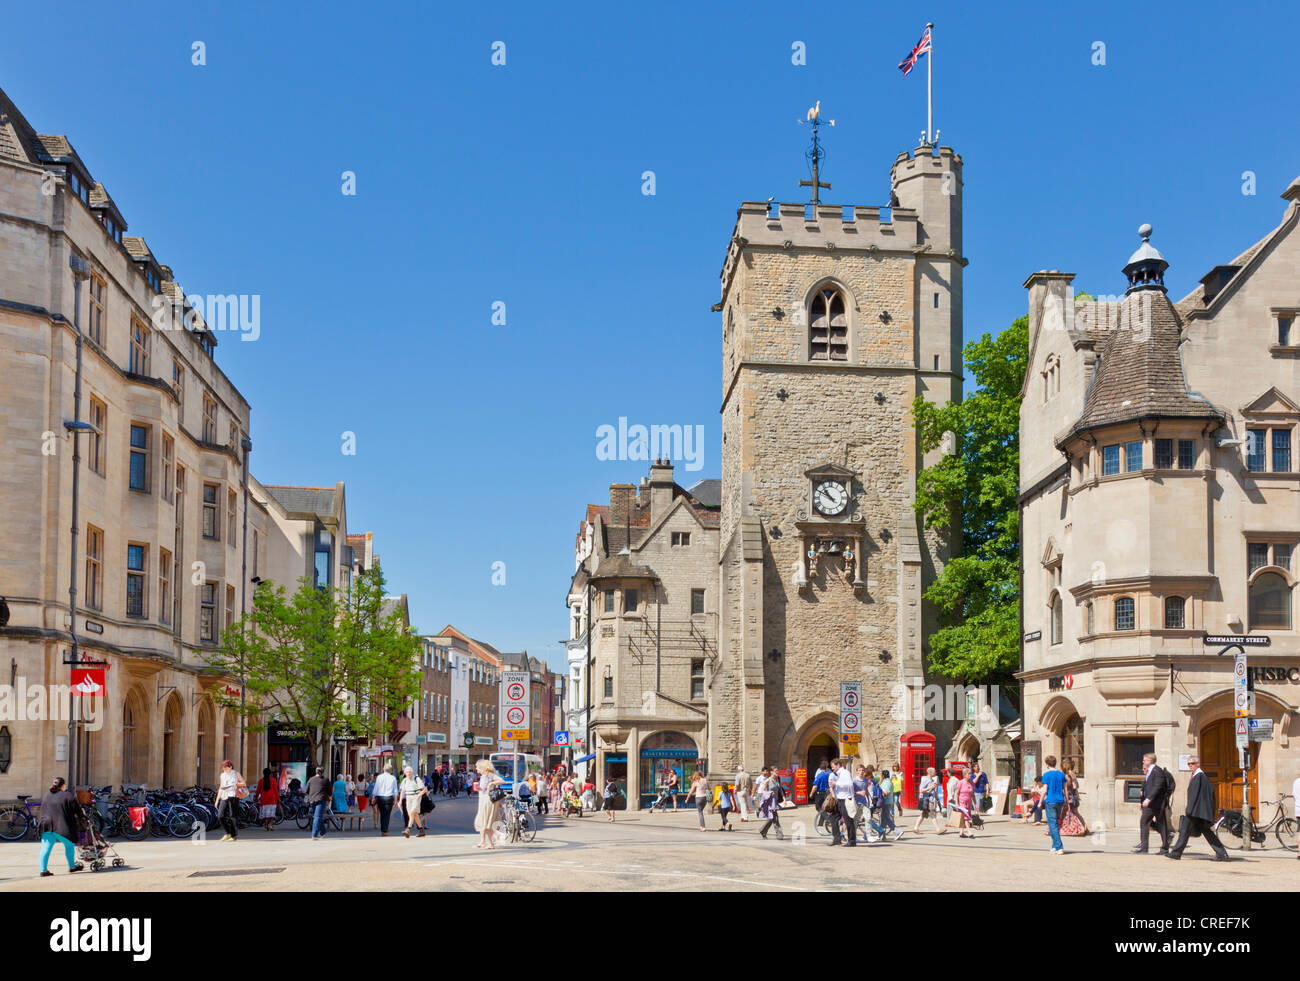 Shoppers in Oxford city centre with Carfax tower at Junction of High street Queen street St Aldates and Cornmarket - Stock Image